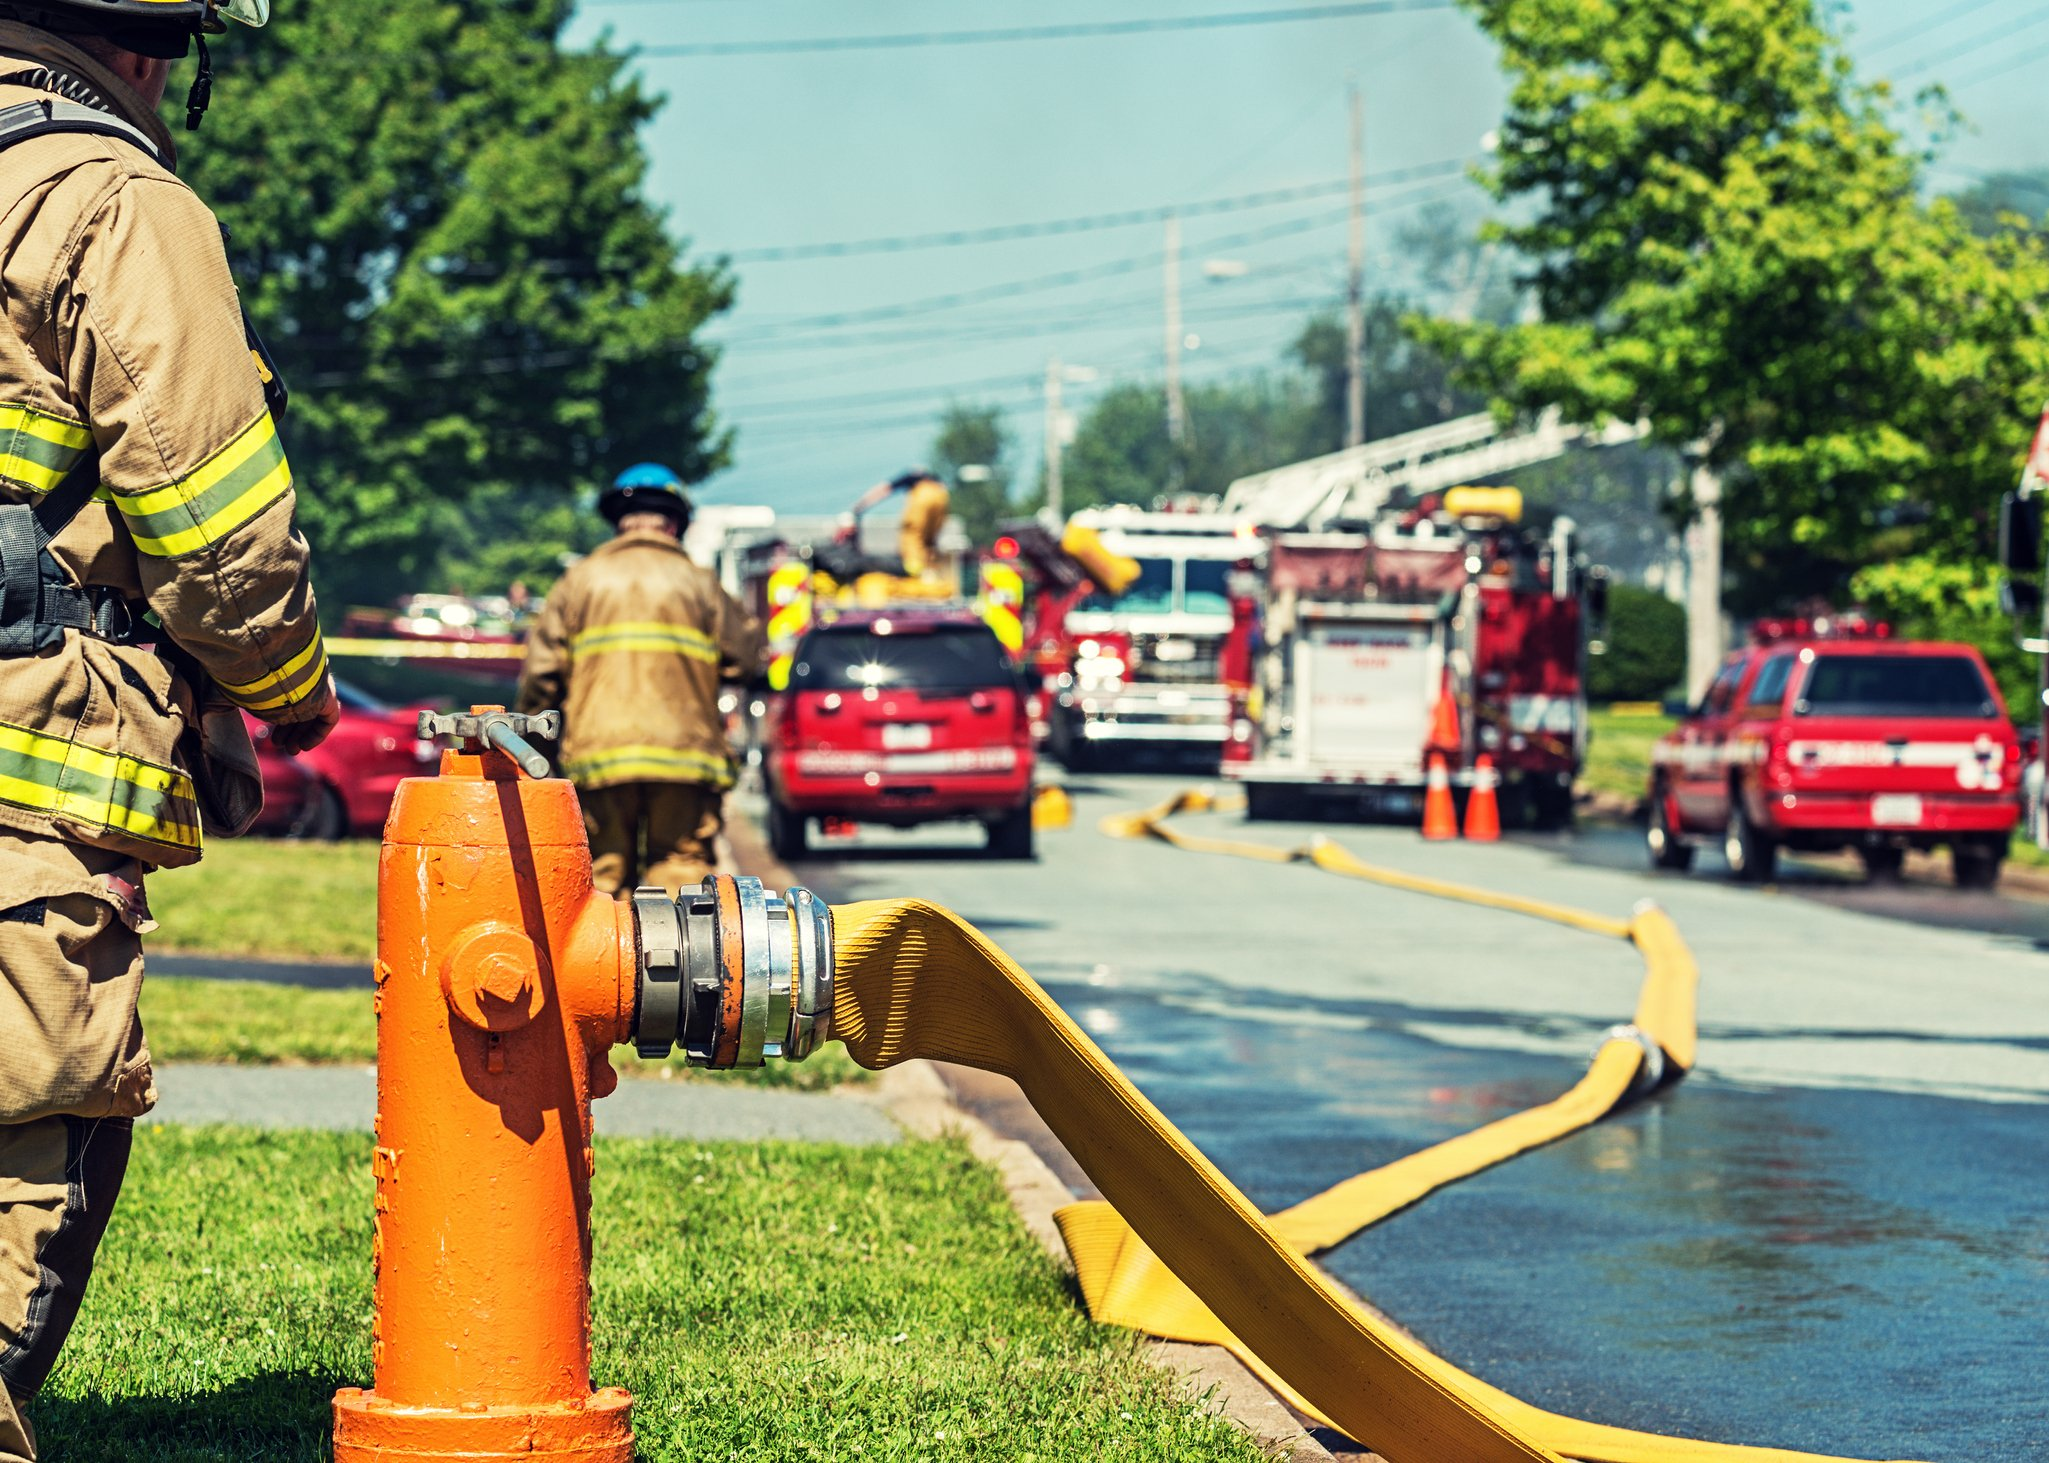 A firefighter stands at ready to turn on a backup fire hydrant on the scene of a house fire.